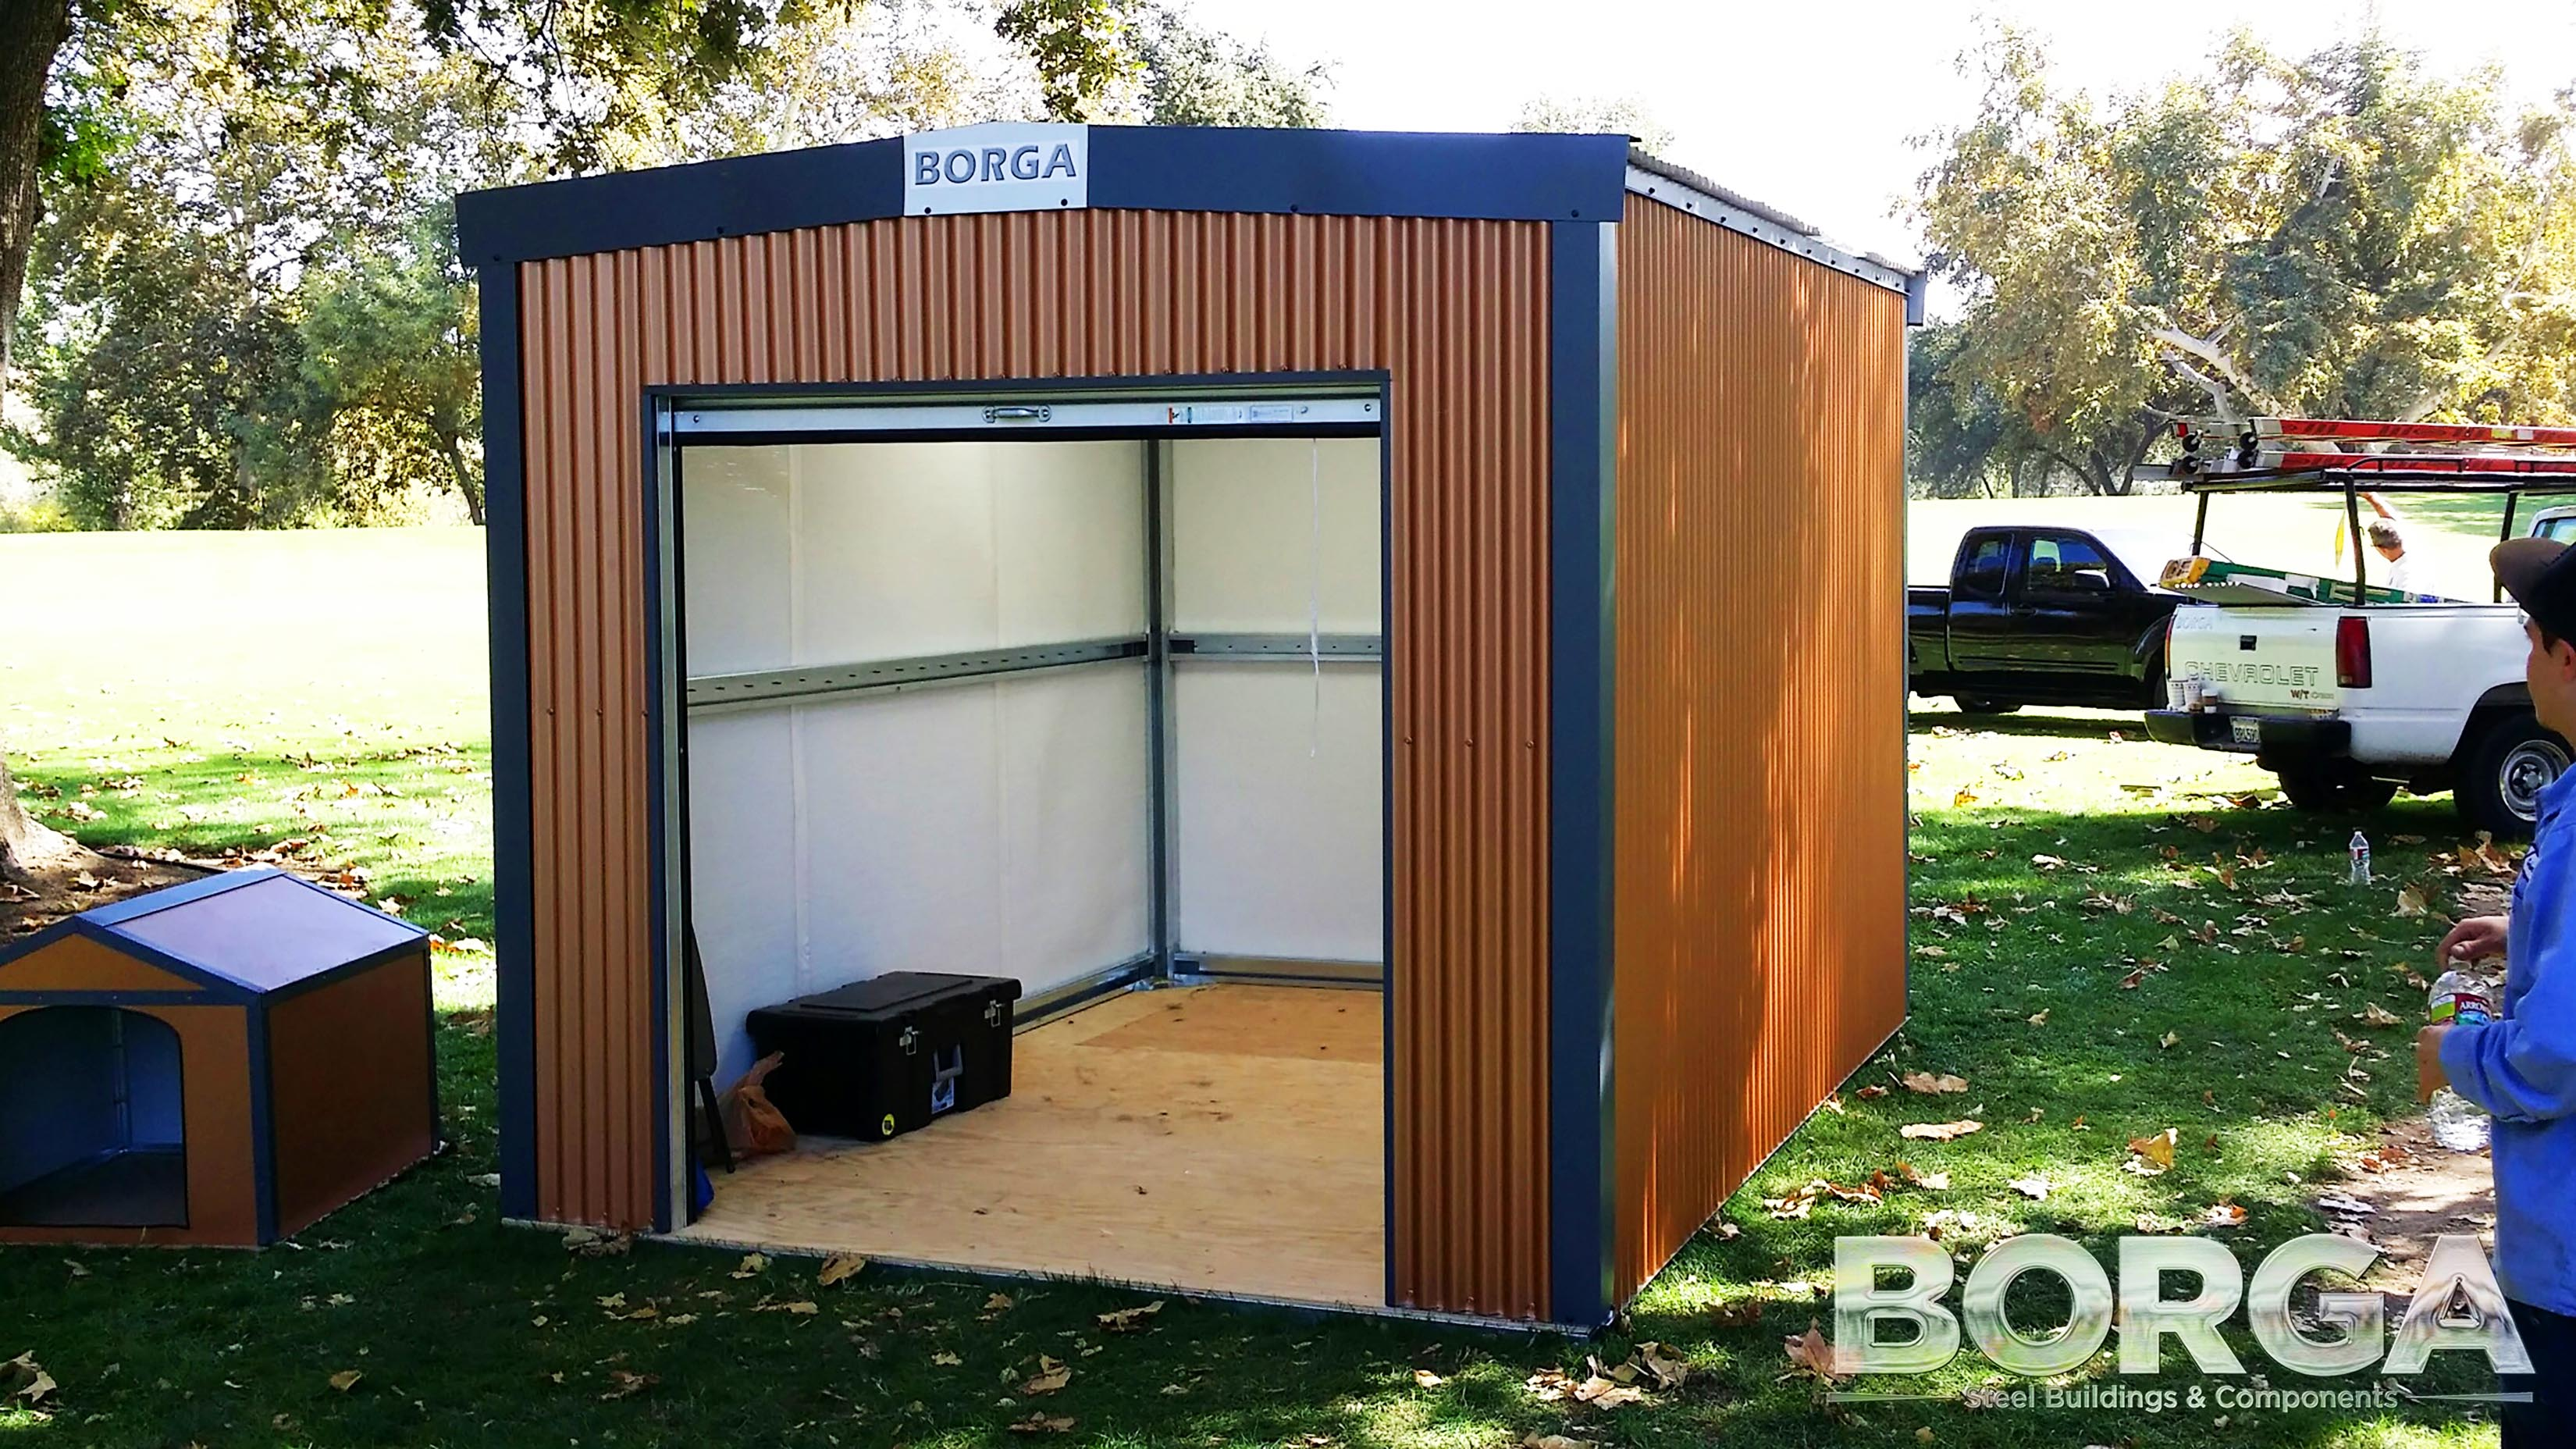 Amazing Borga Steel Buildings Components Fresno Ca California Brown Blue Doghouse Shed  Storage Man Cave Fowler